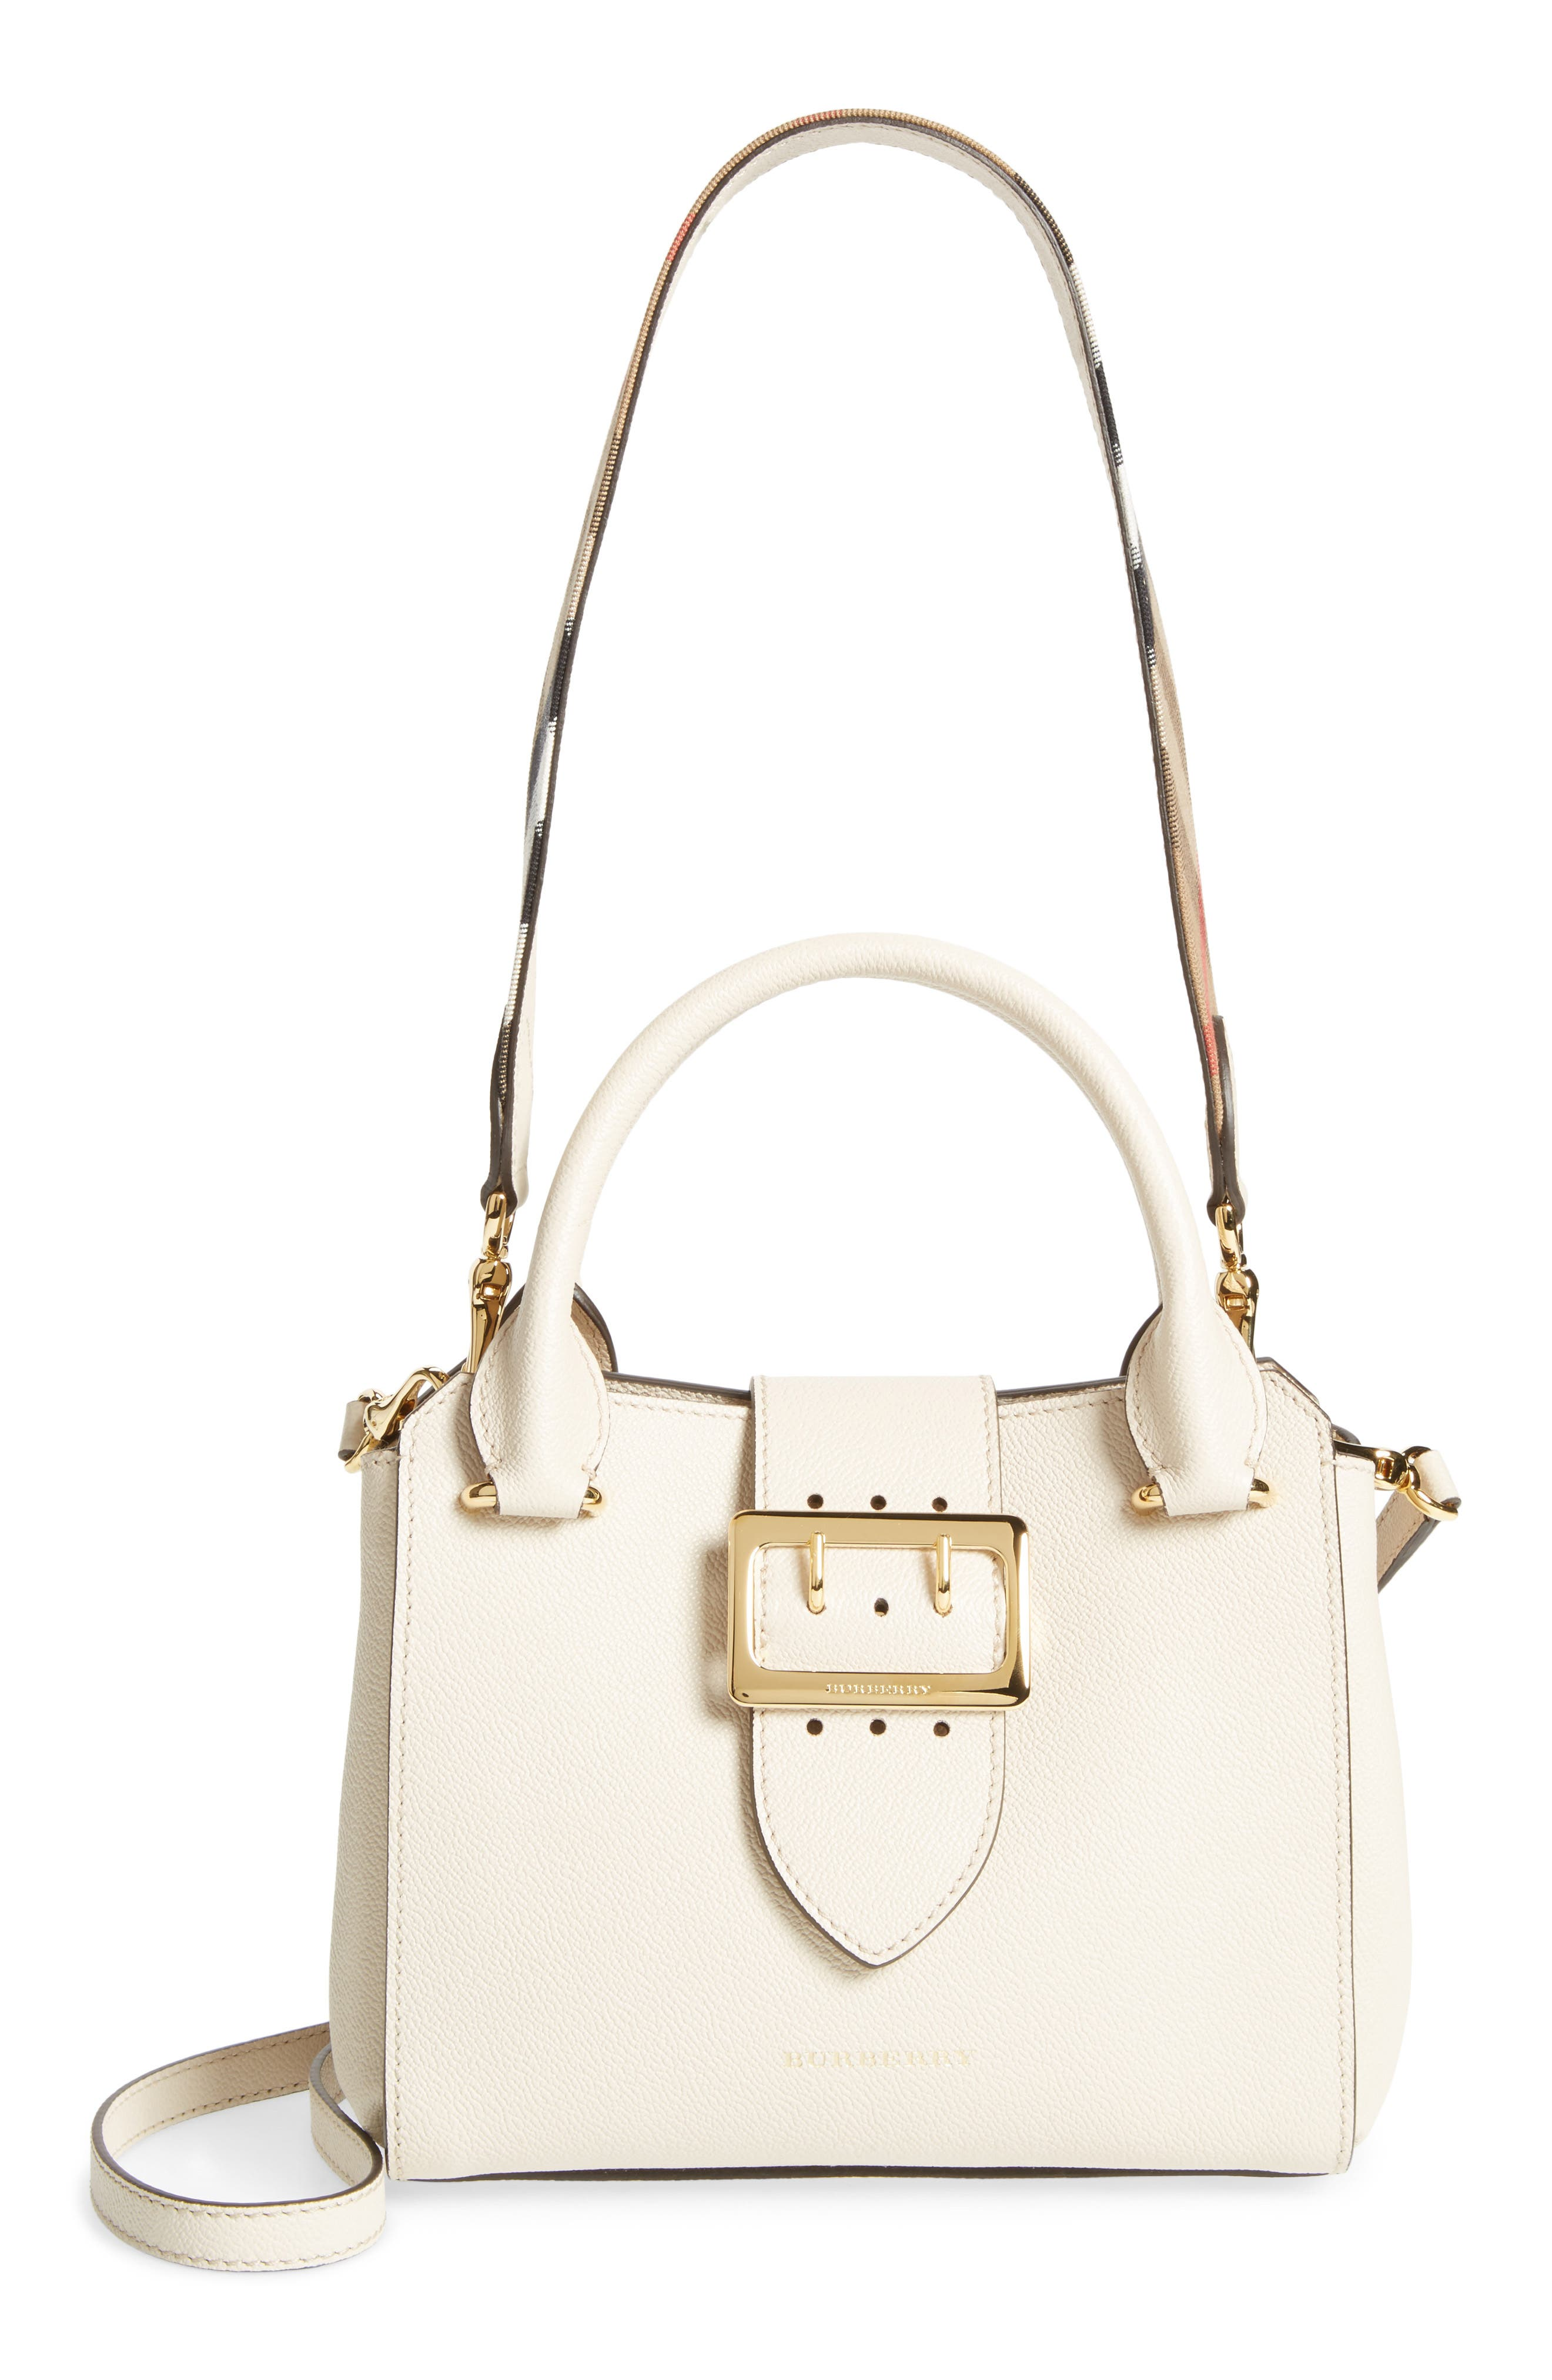 Burberry Small Buckle Leather Satchel